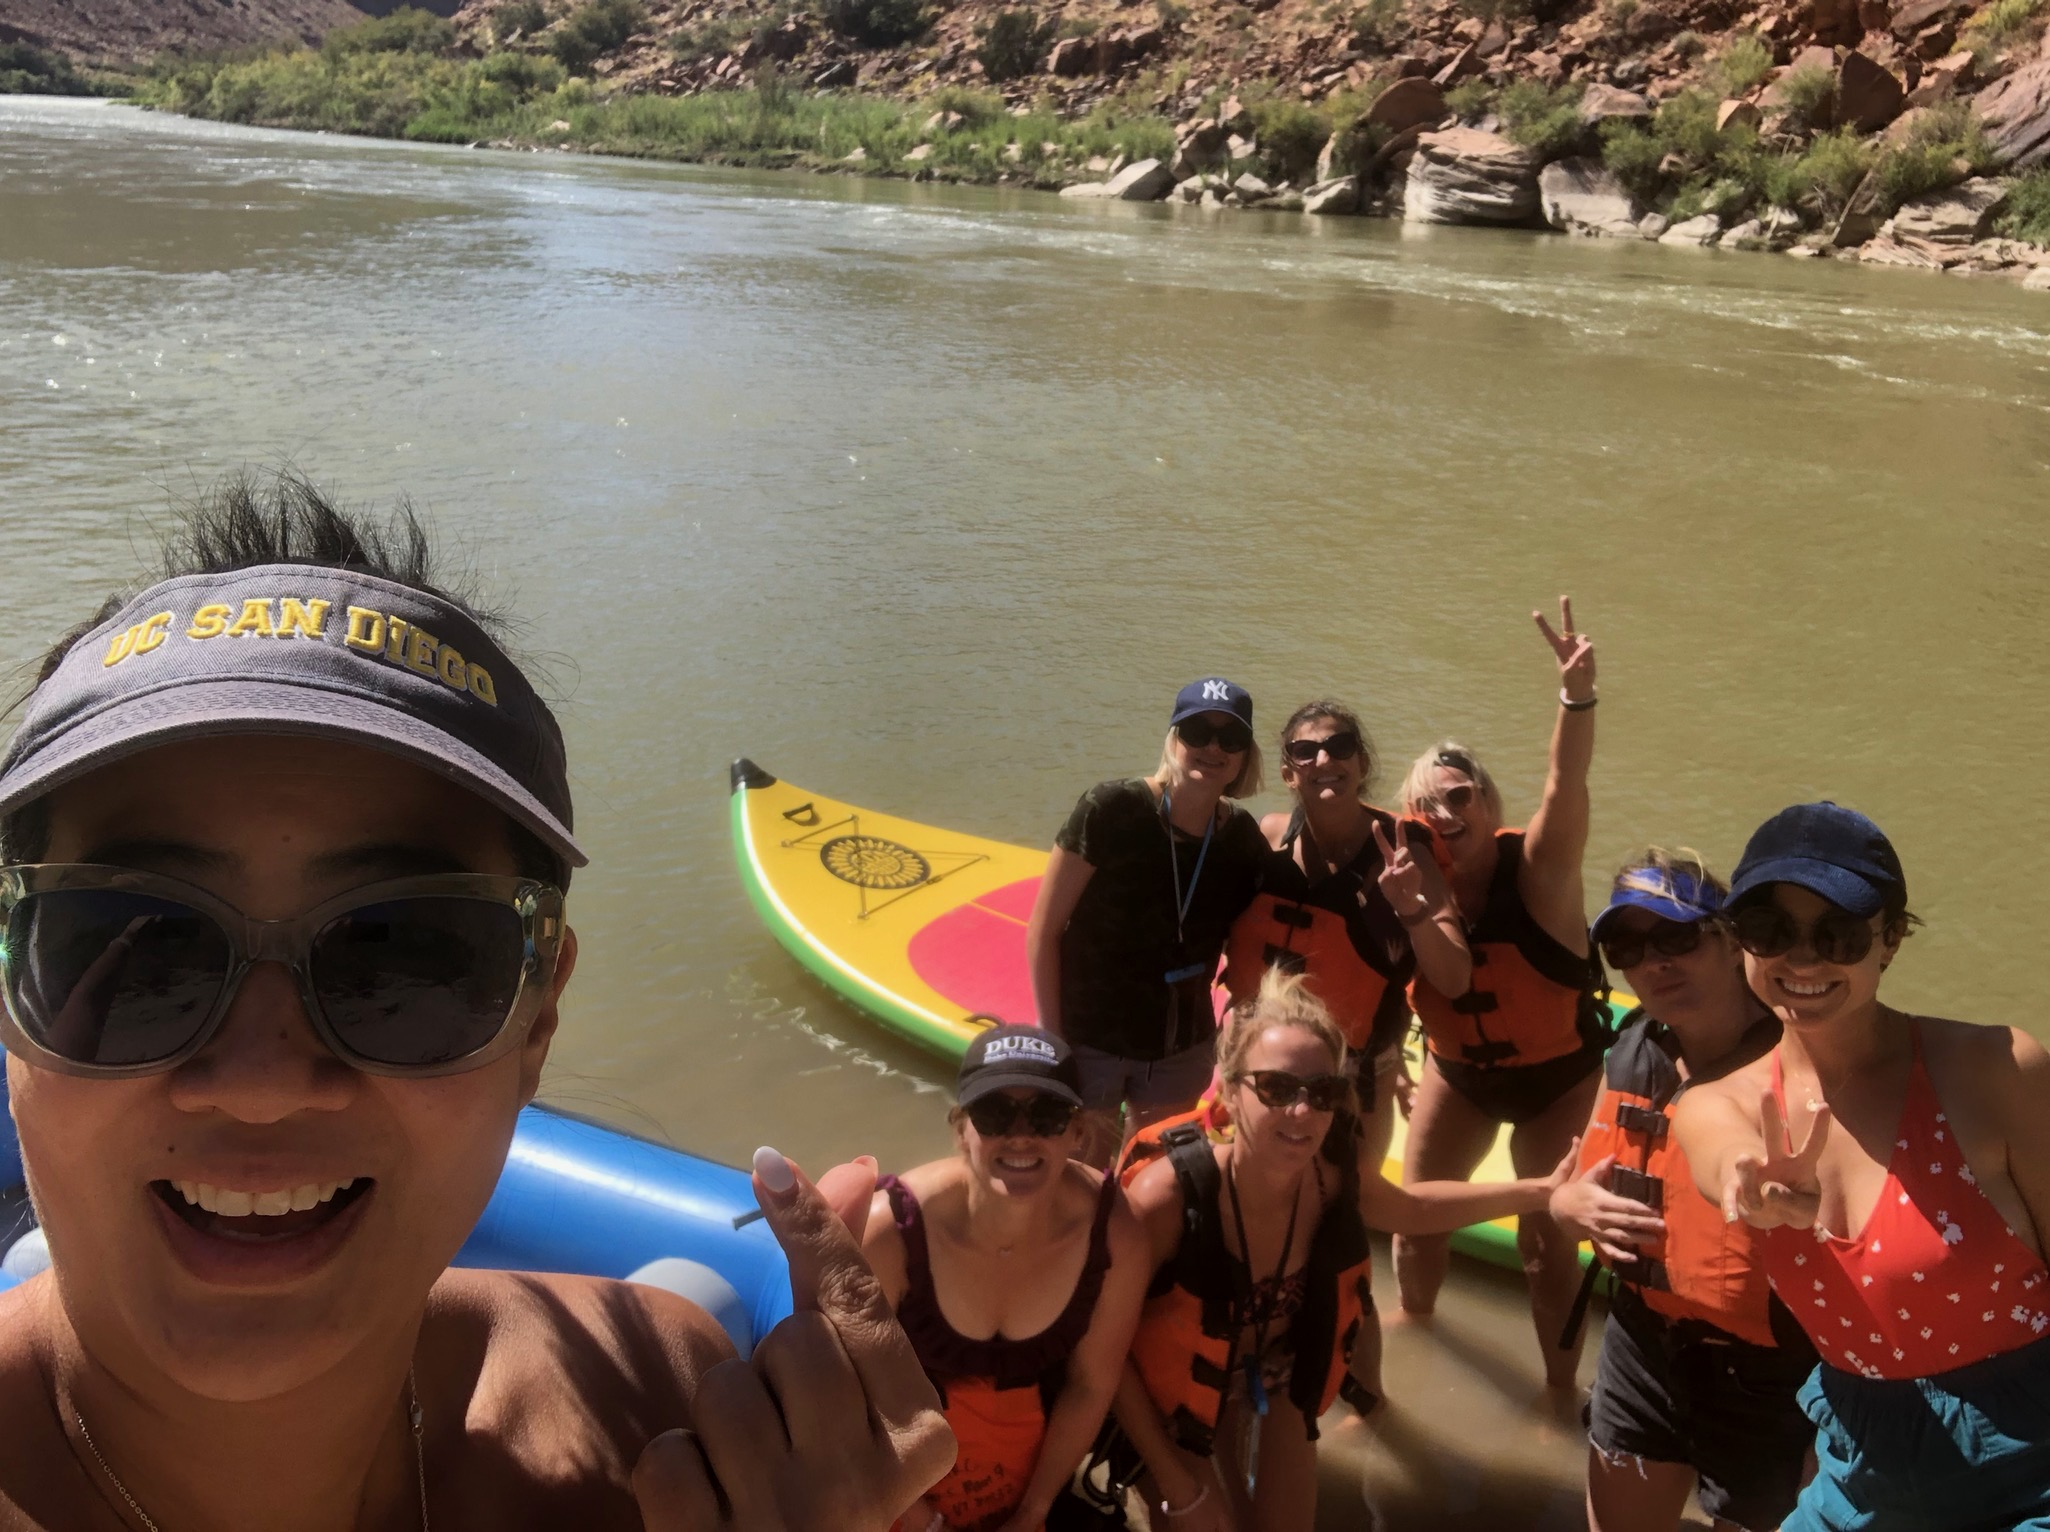 Braving the River WITH this amazing Sisterhood | Moab, Utah | October 2019